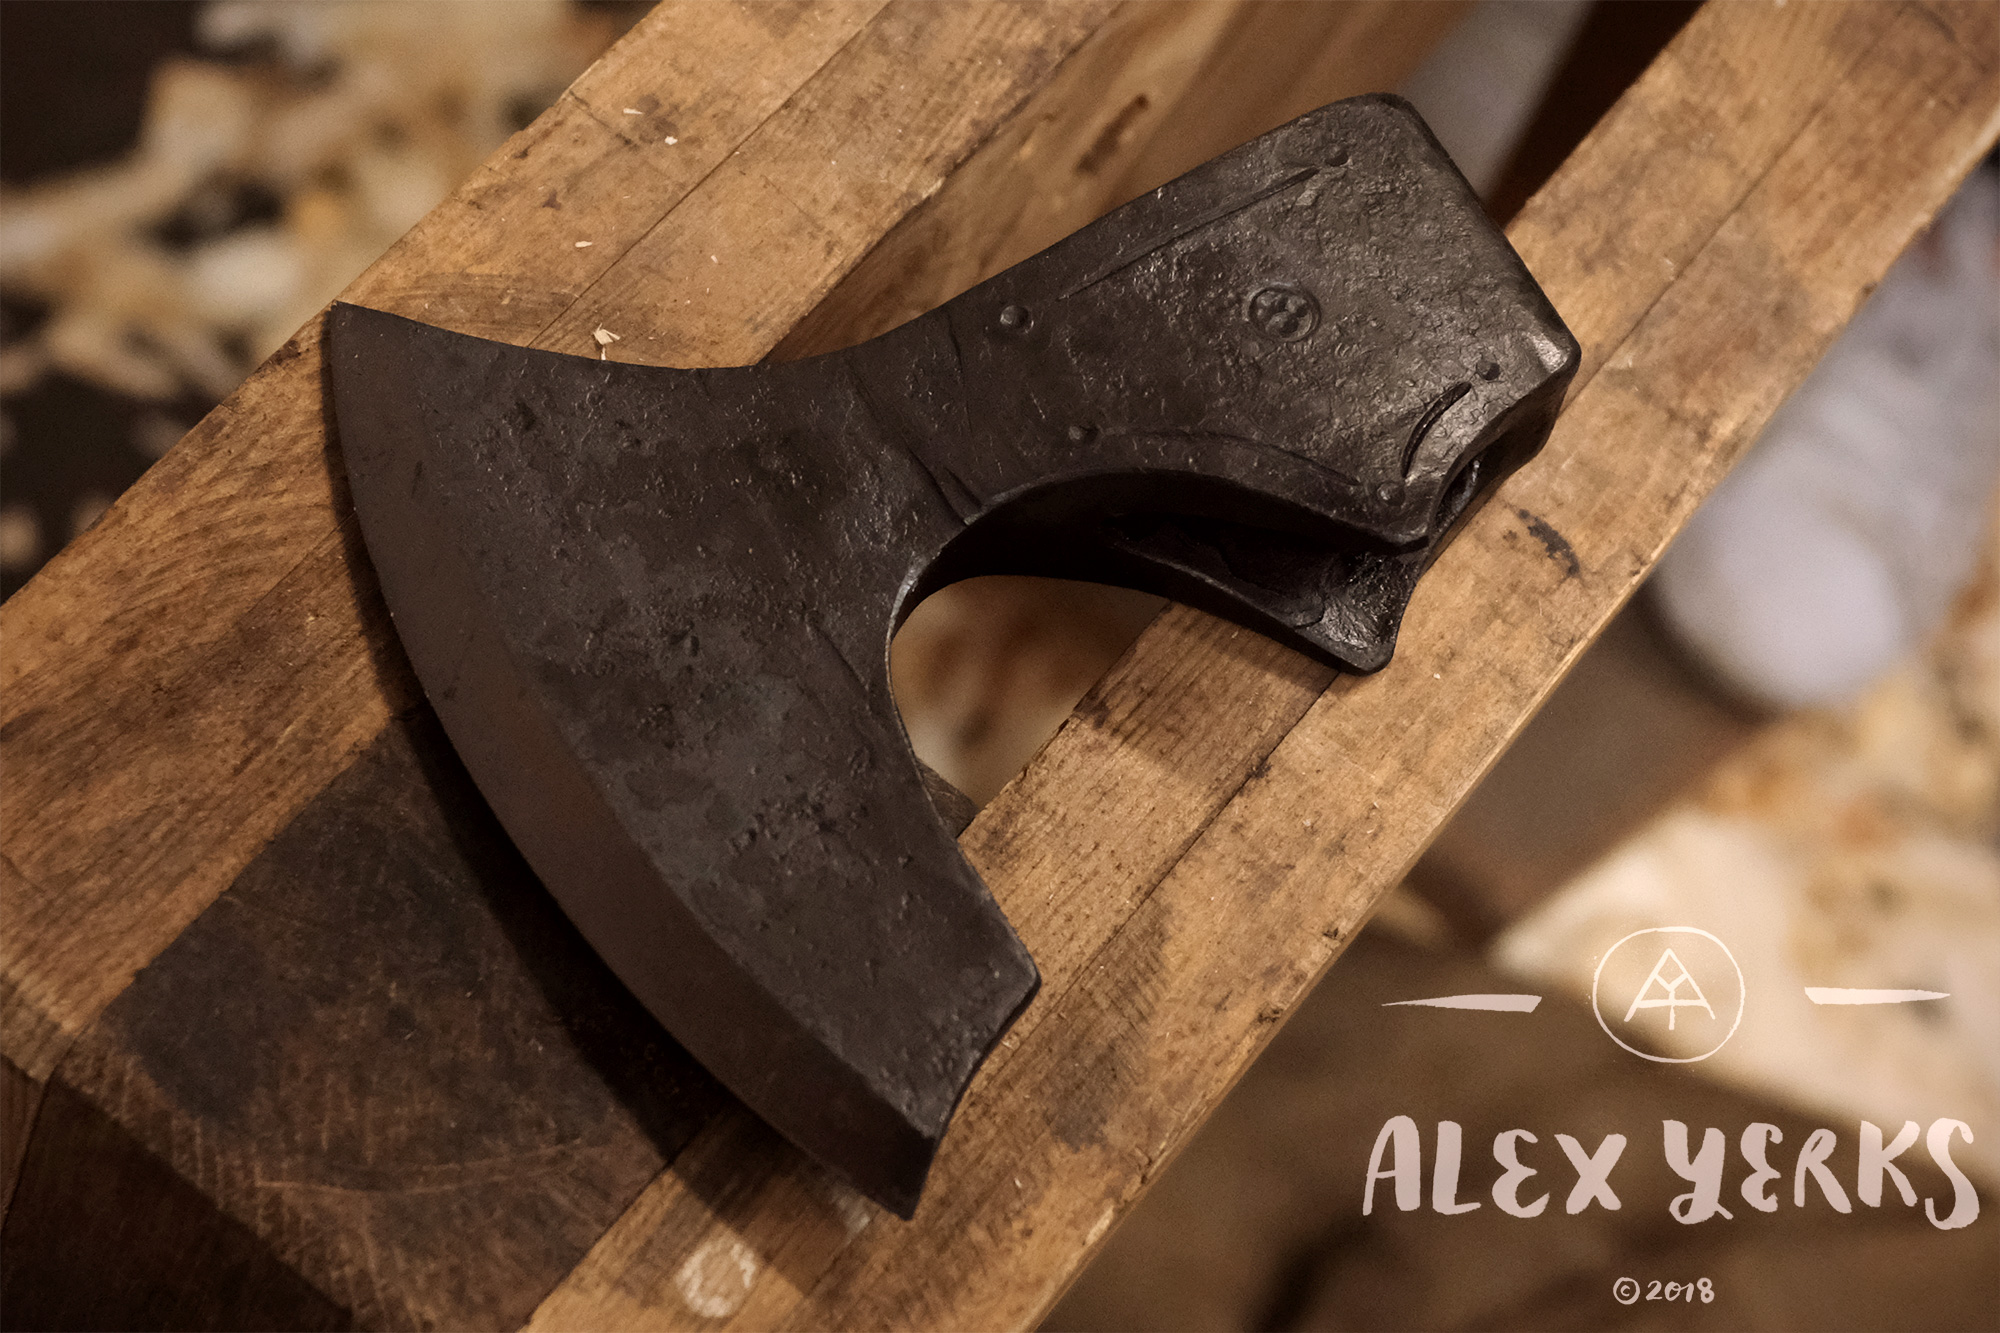 I wanted to modify the grind on this axe with a special inside grind I am really into.